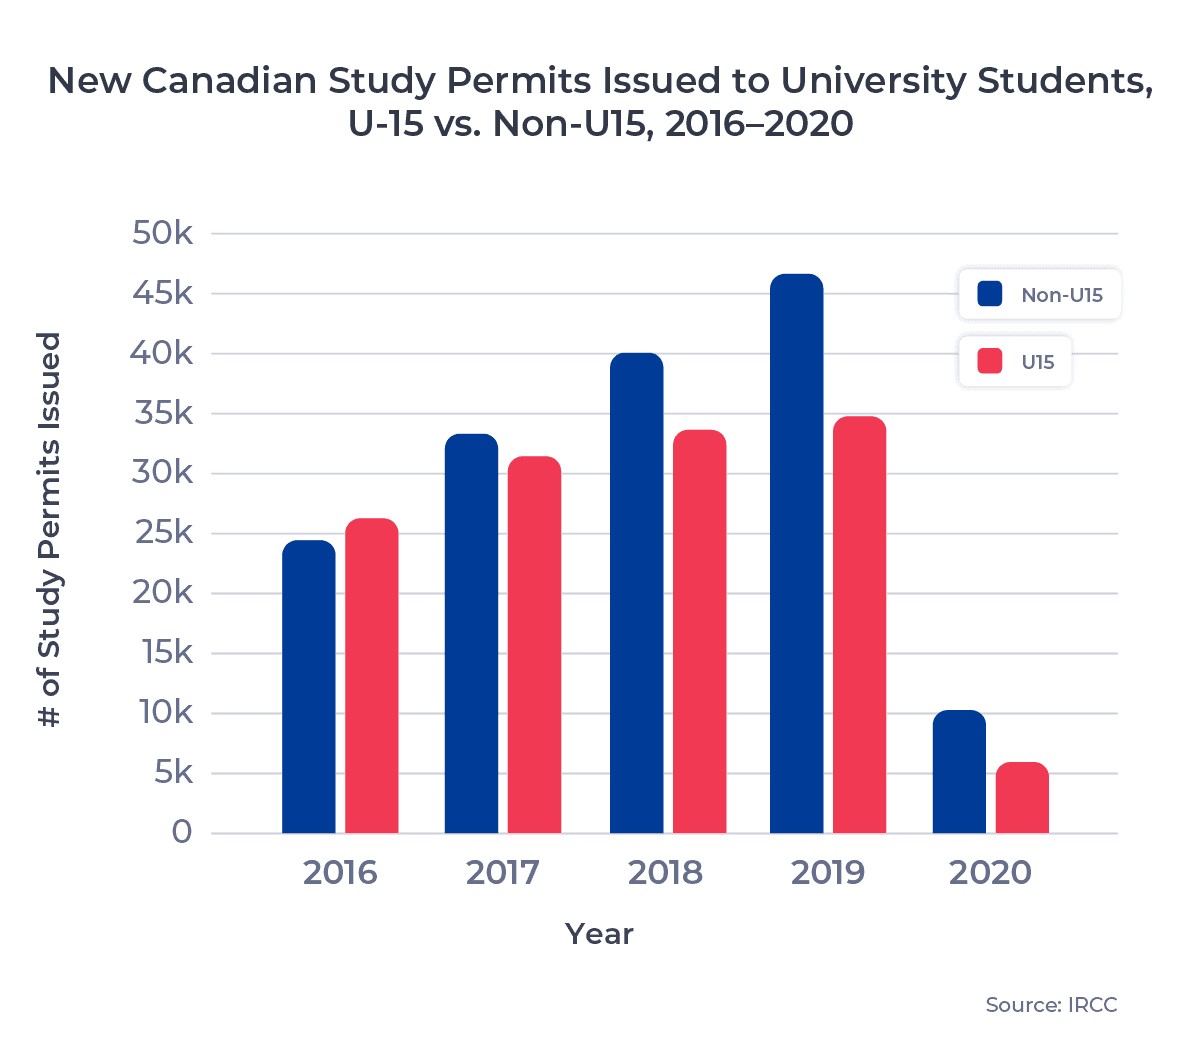 New Canadian Study Permits Issued to University Students, U15 vs. Non-U15, 2016–2020